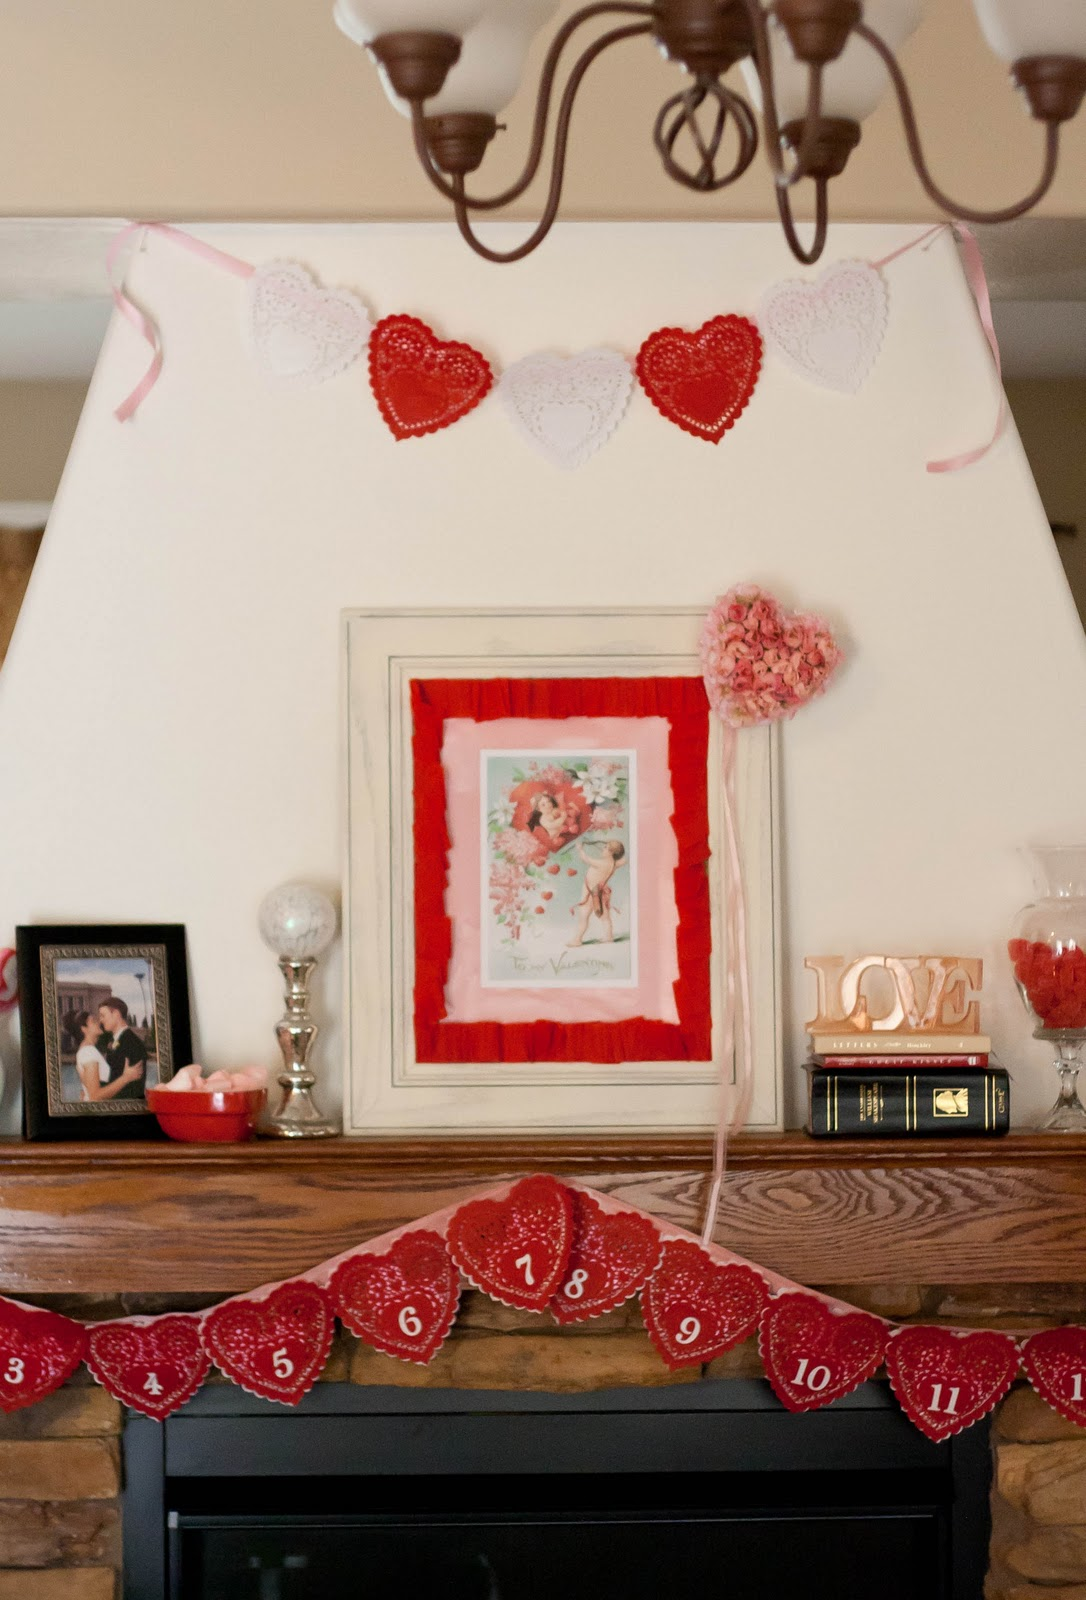 How to Make a Love Letter Garland {Valentine} - Tip Junkie